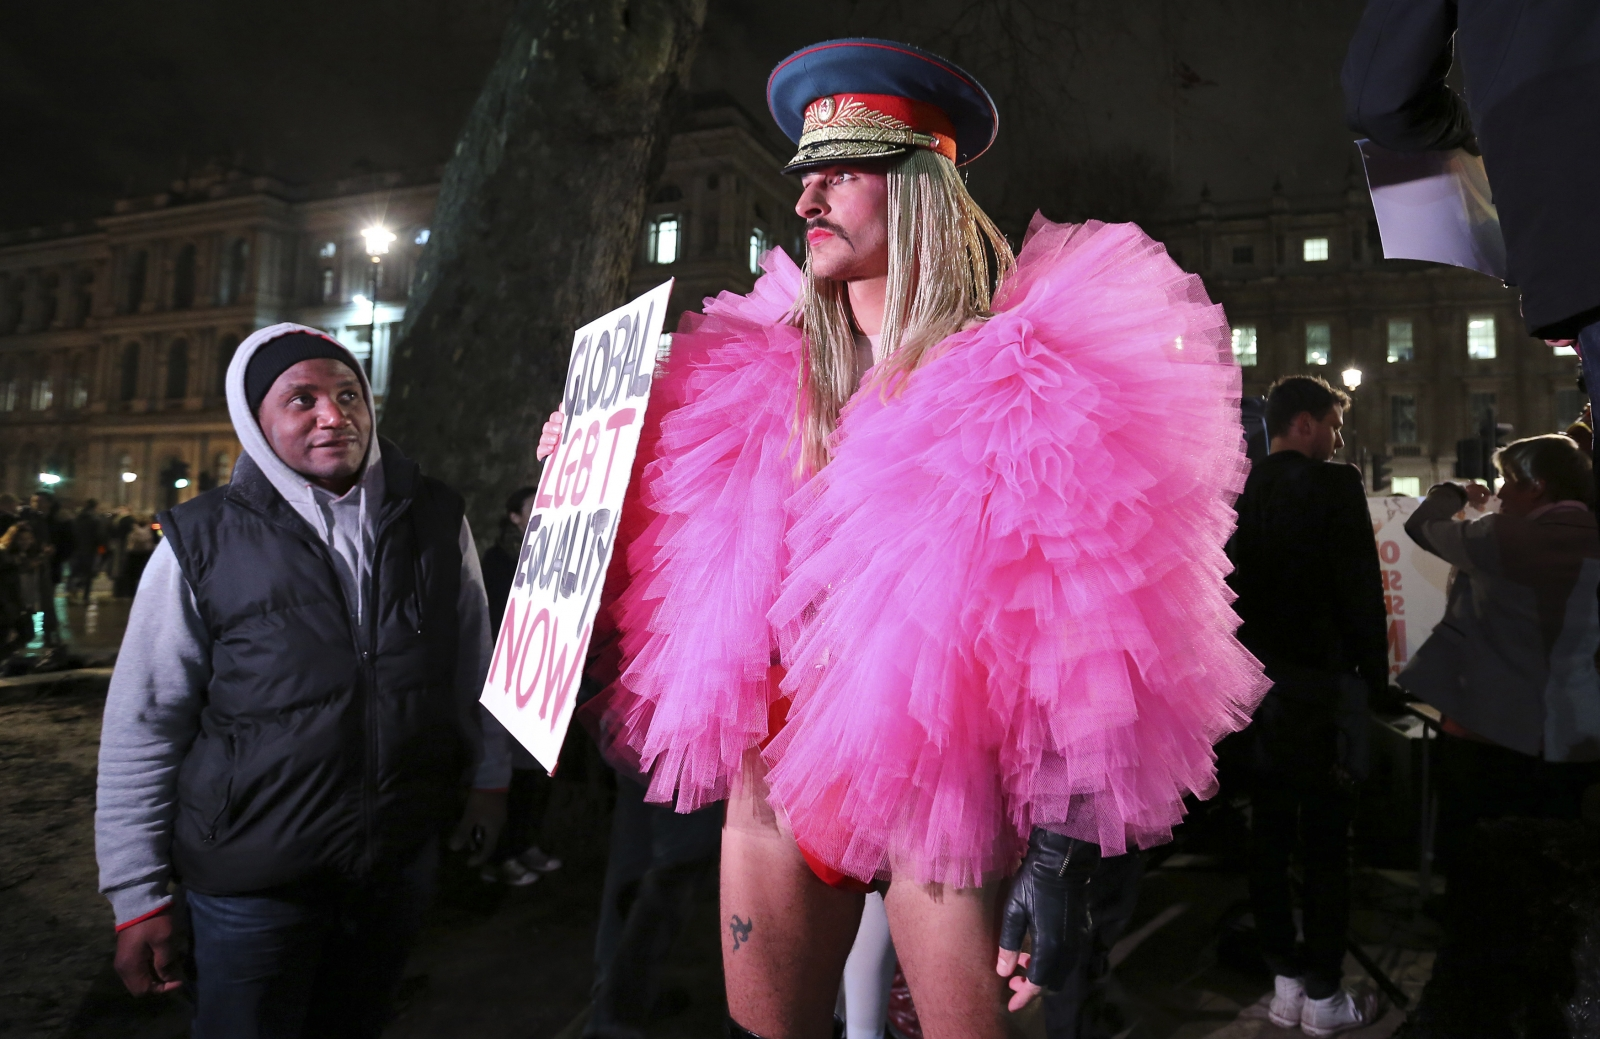 A gay rights protester rallies against Russia's anti-gay stance outside Downing Street, central London